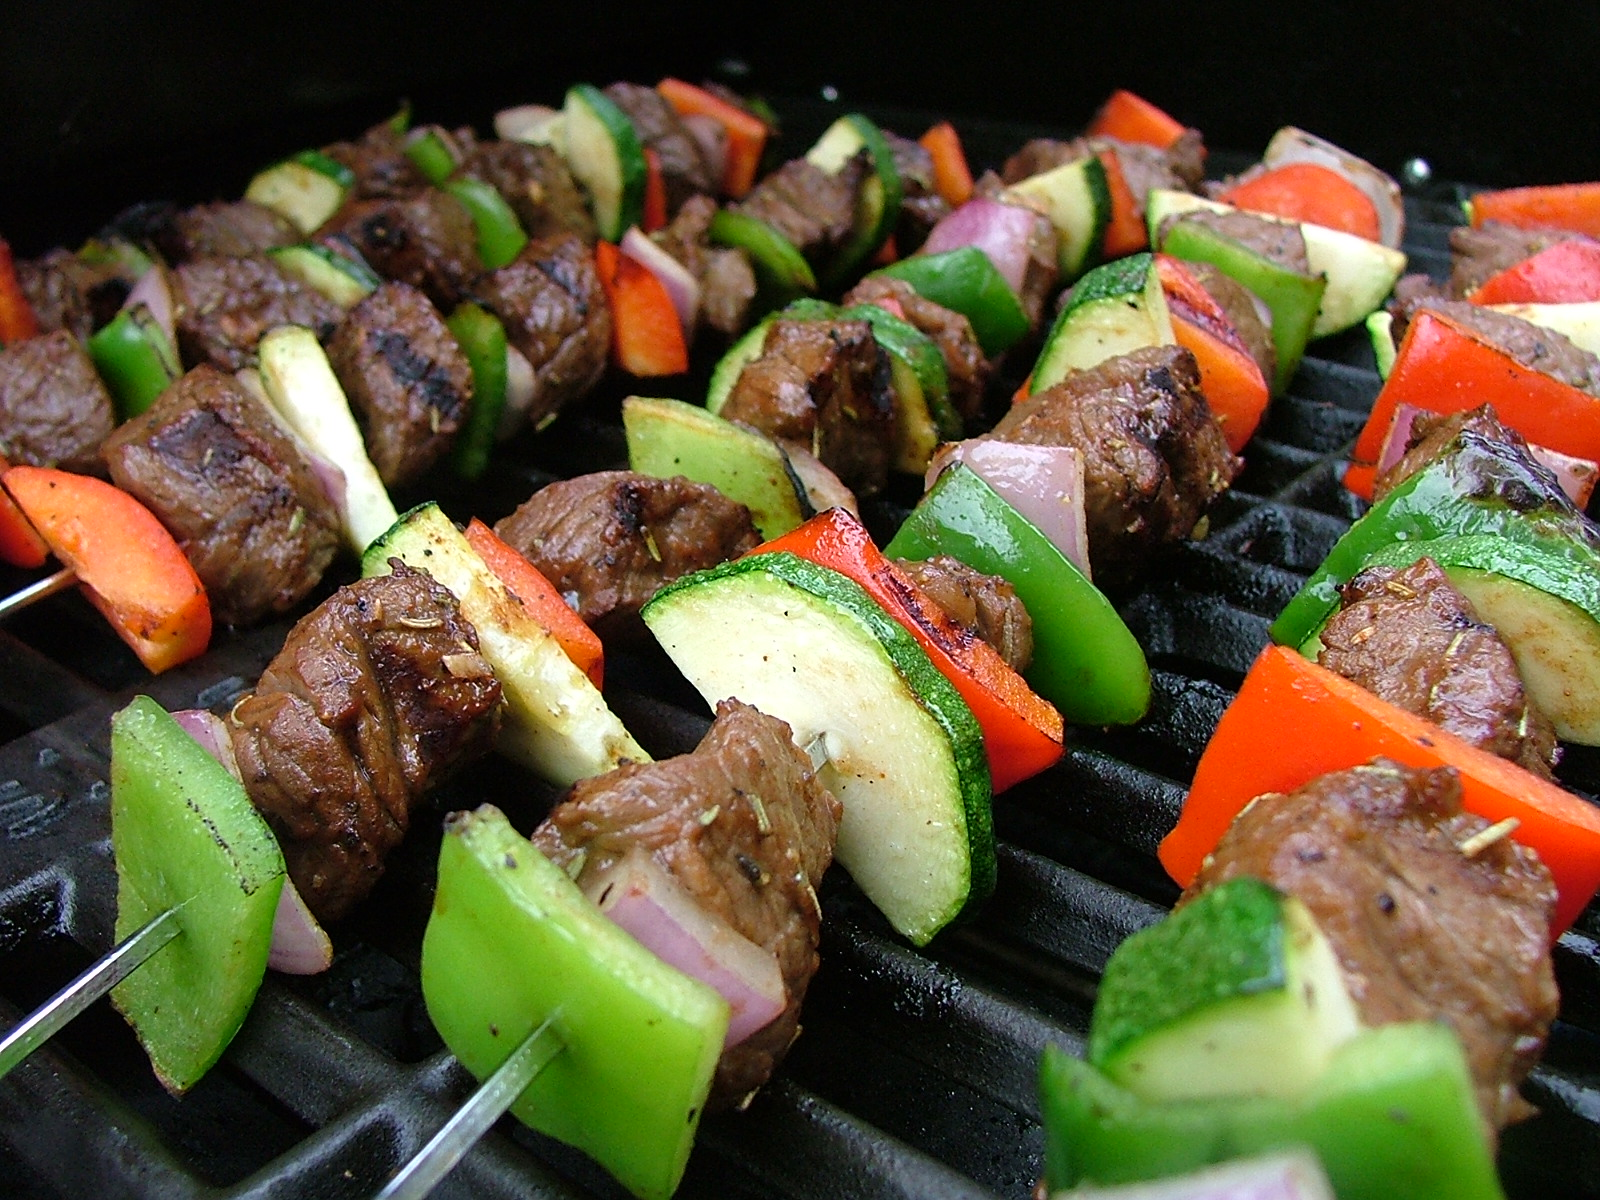 Grilled Vegetable and Beef Skewers | Cook-a-palooza